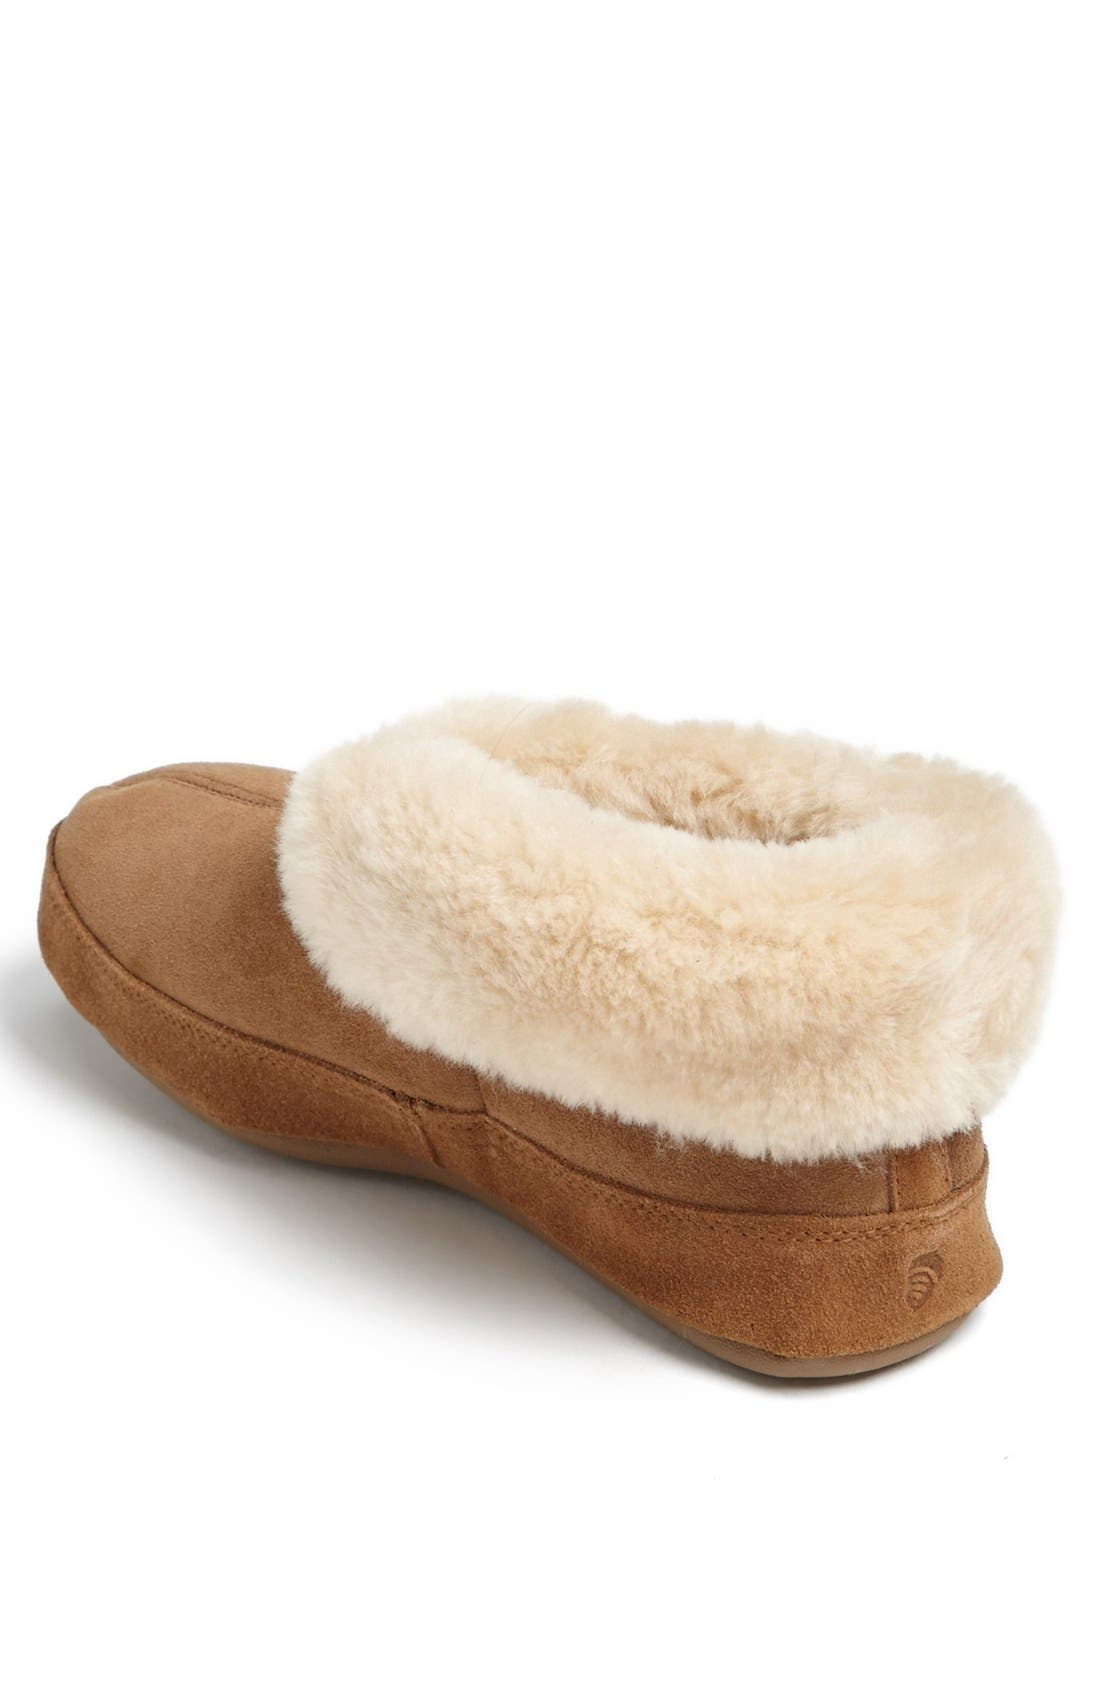 Alternate Image 2  - Acorn Genuine Sheepskin Slipper (Men)